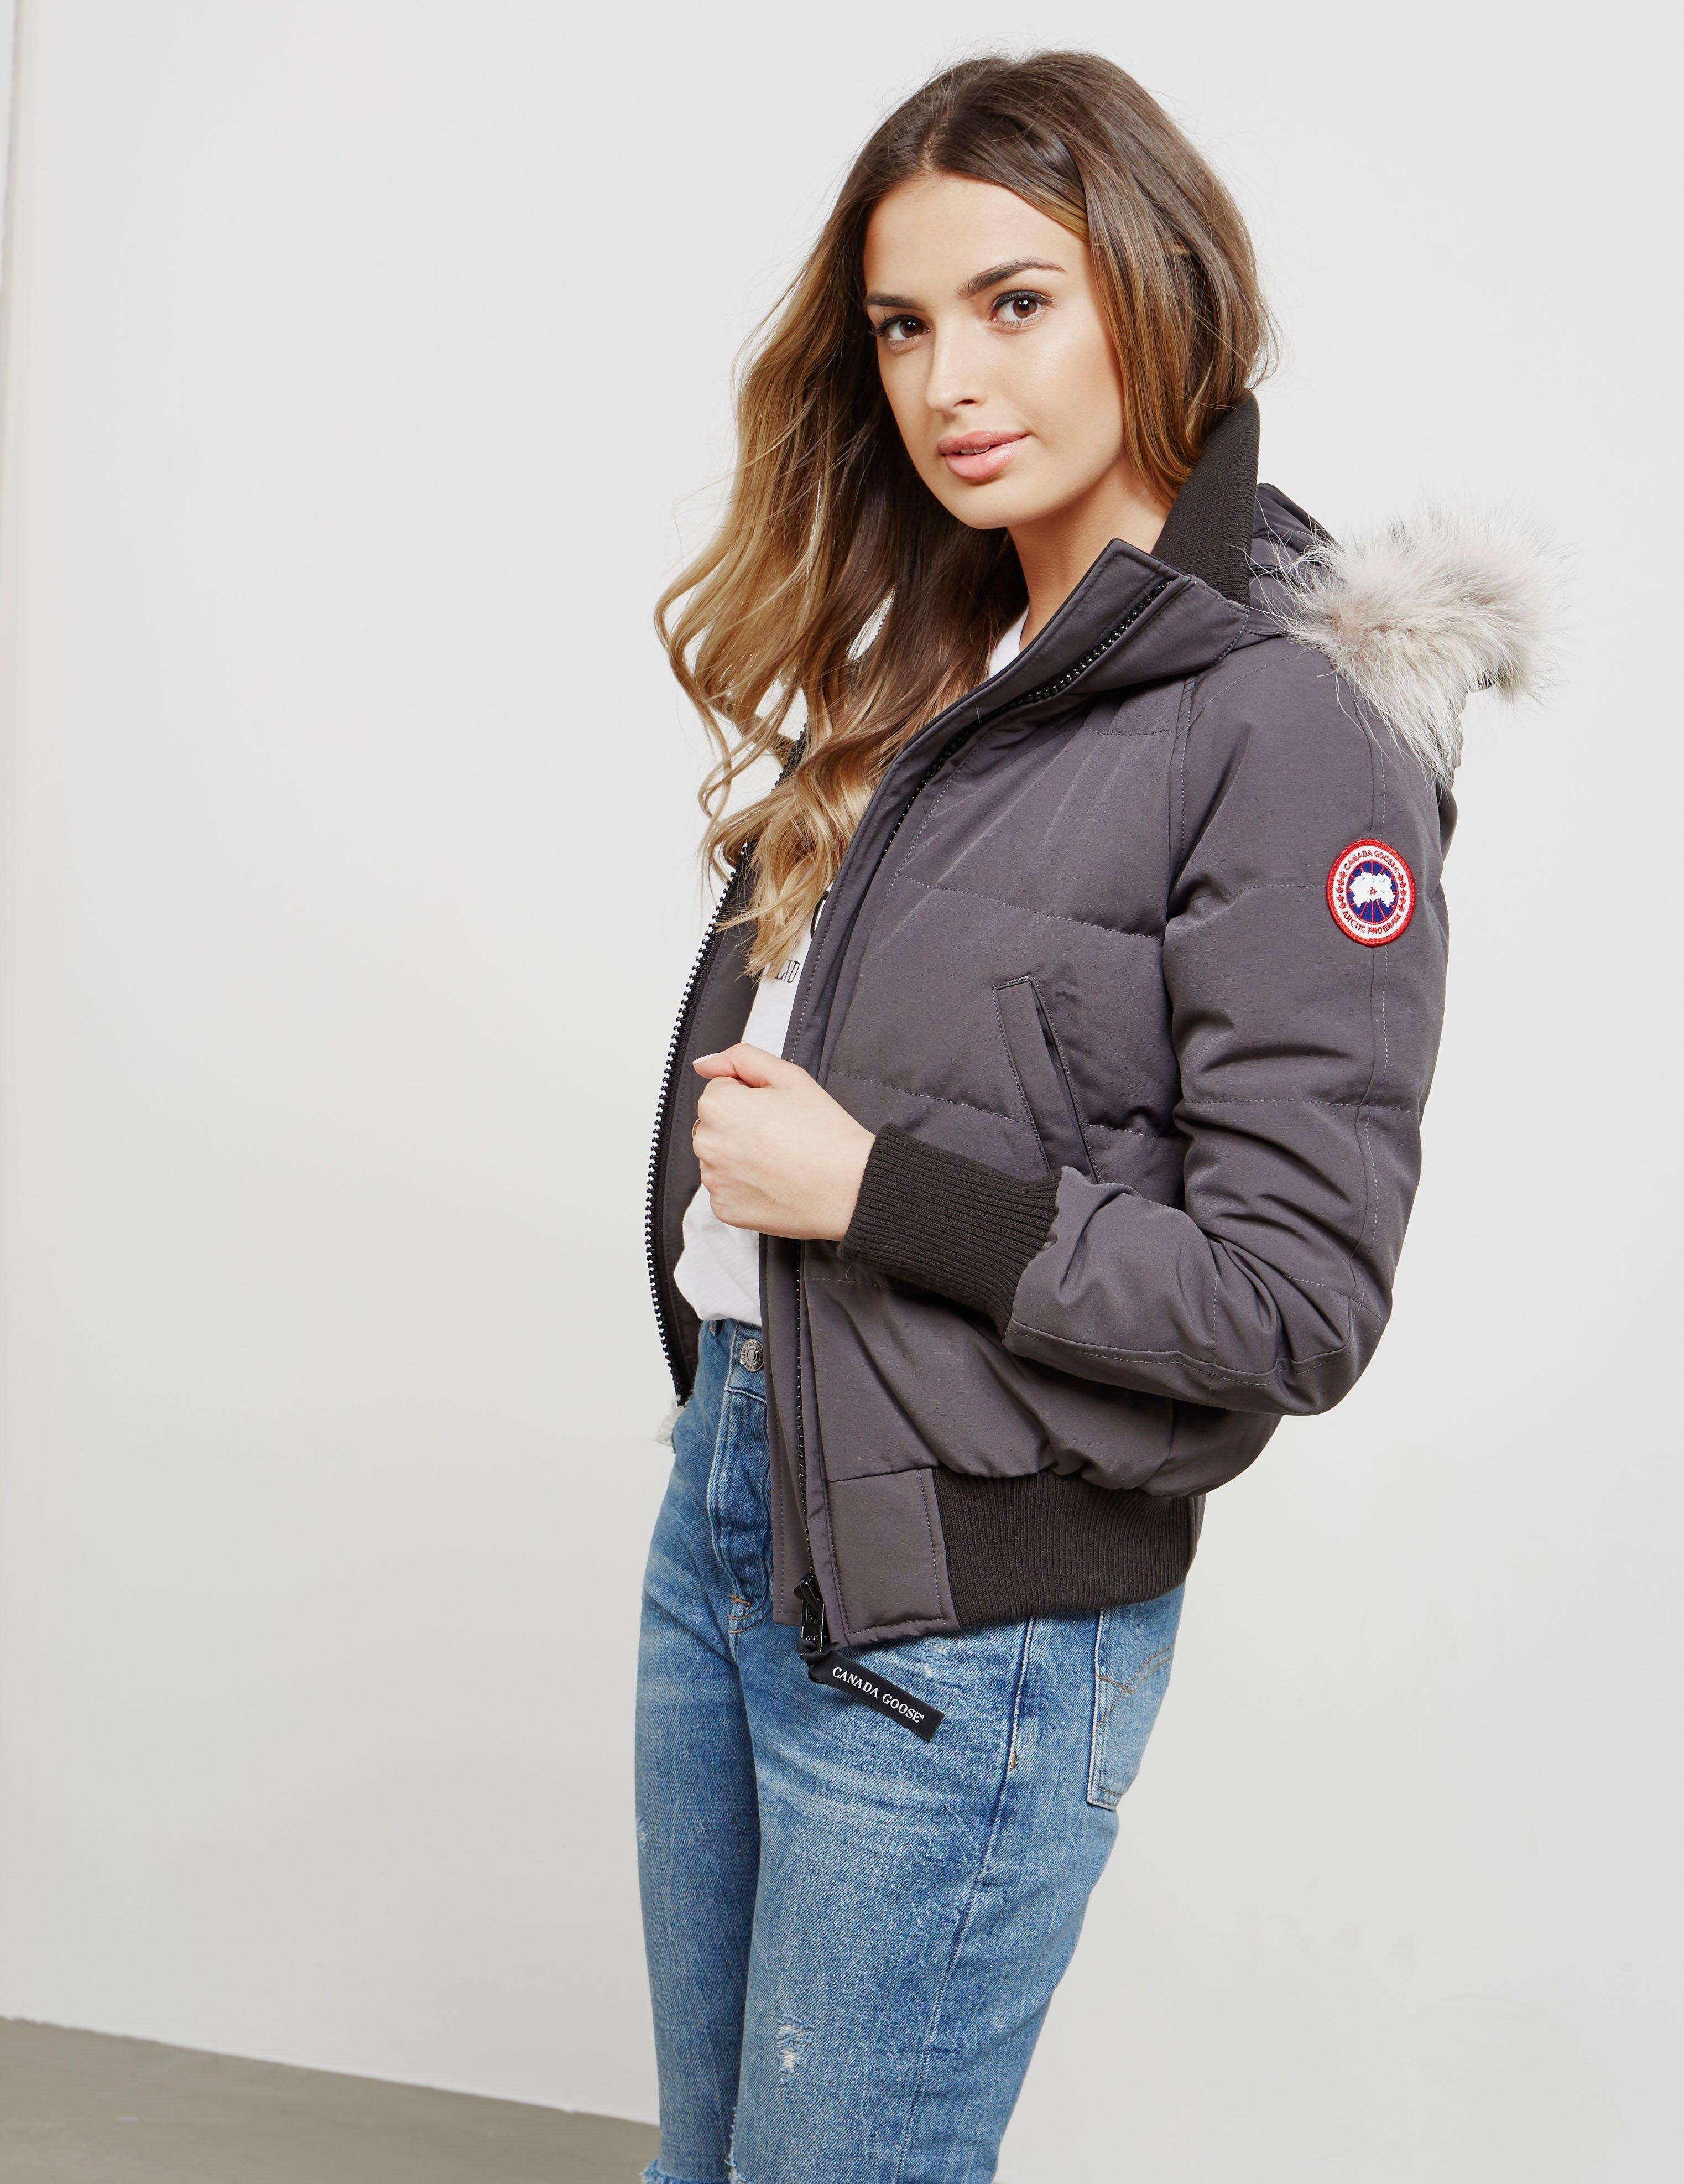 c856ddc1d15 Canada Goose Womens Savona Padded Bomber Jacket Grey in Gray - Lyst